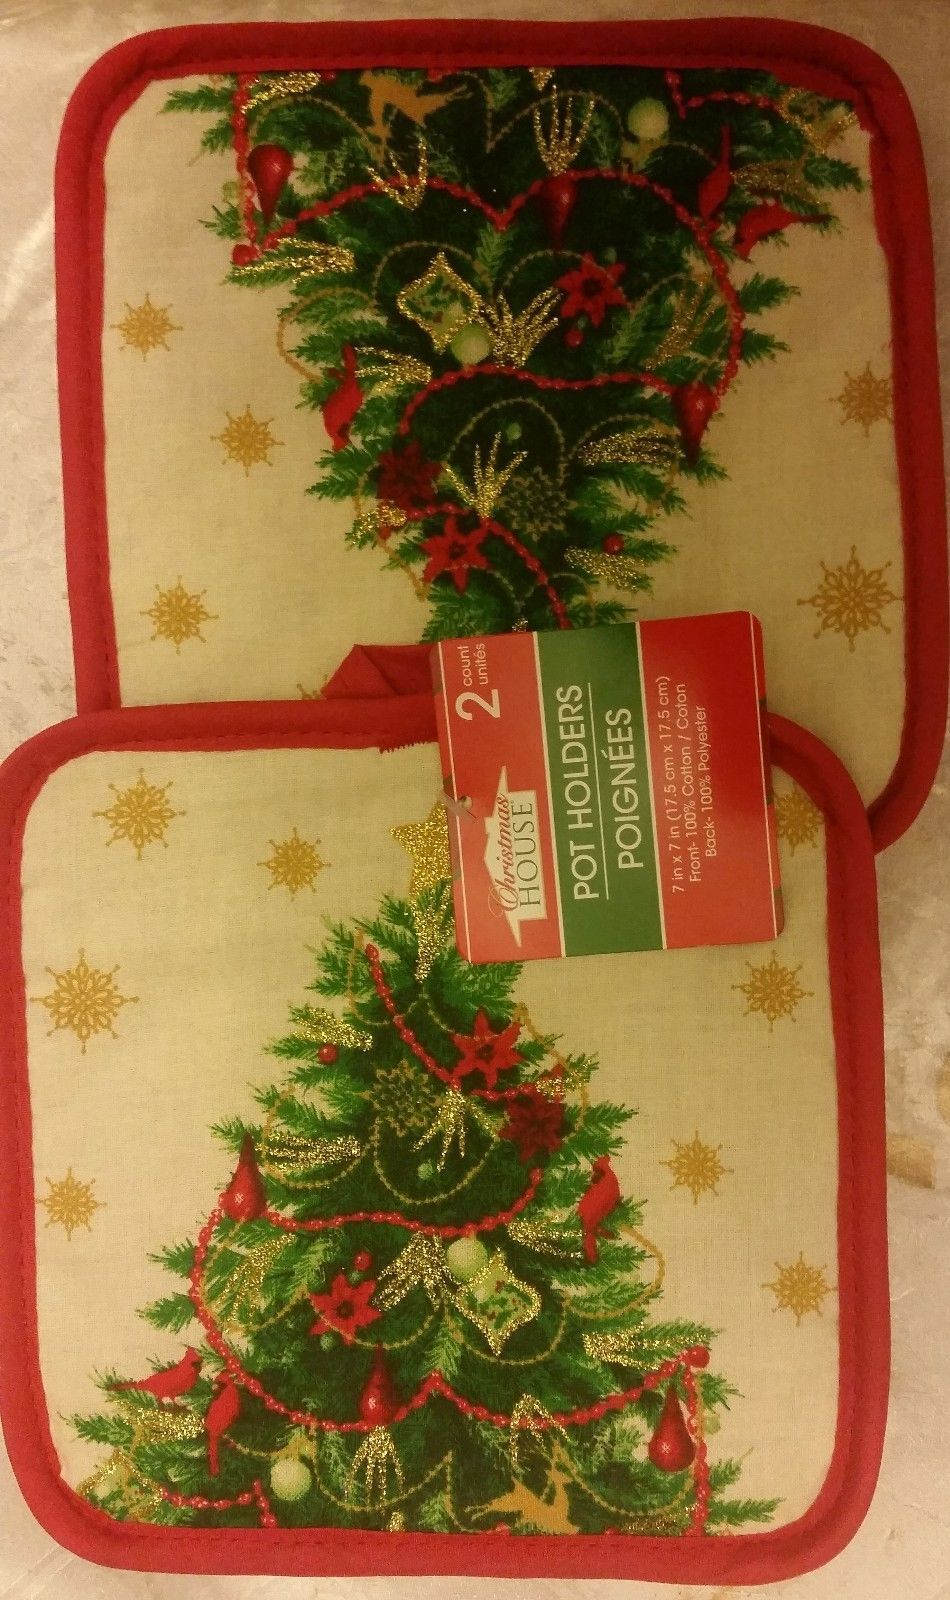 SET 2 RARE Printed Kitchen Pot Holders, SPARKLING CHRISTMAS TREE, red back